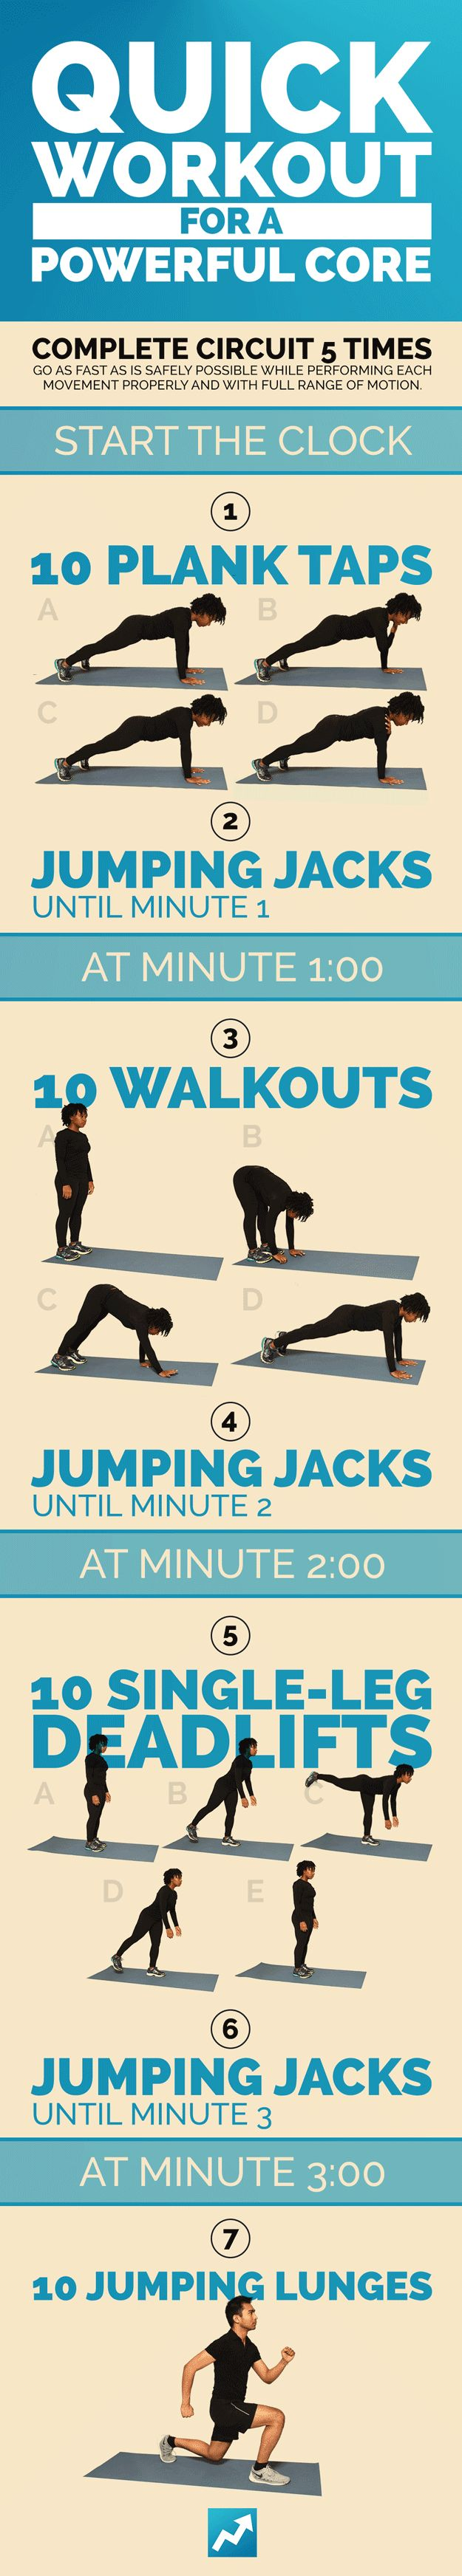 Quick workout for a powerful core